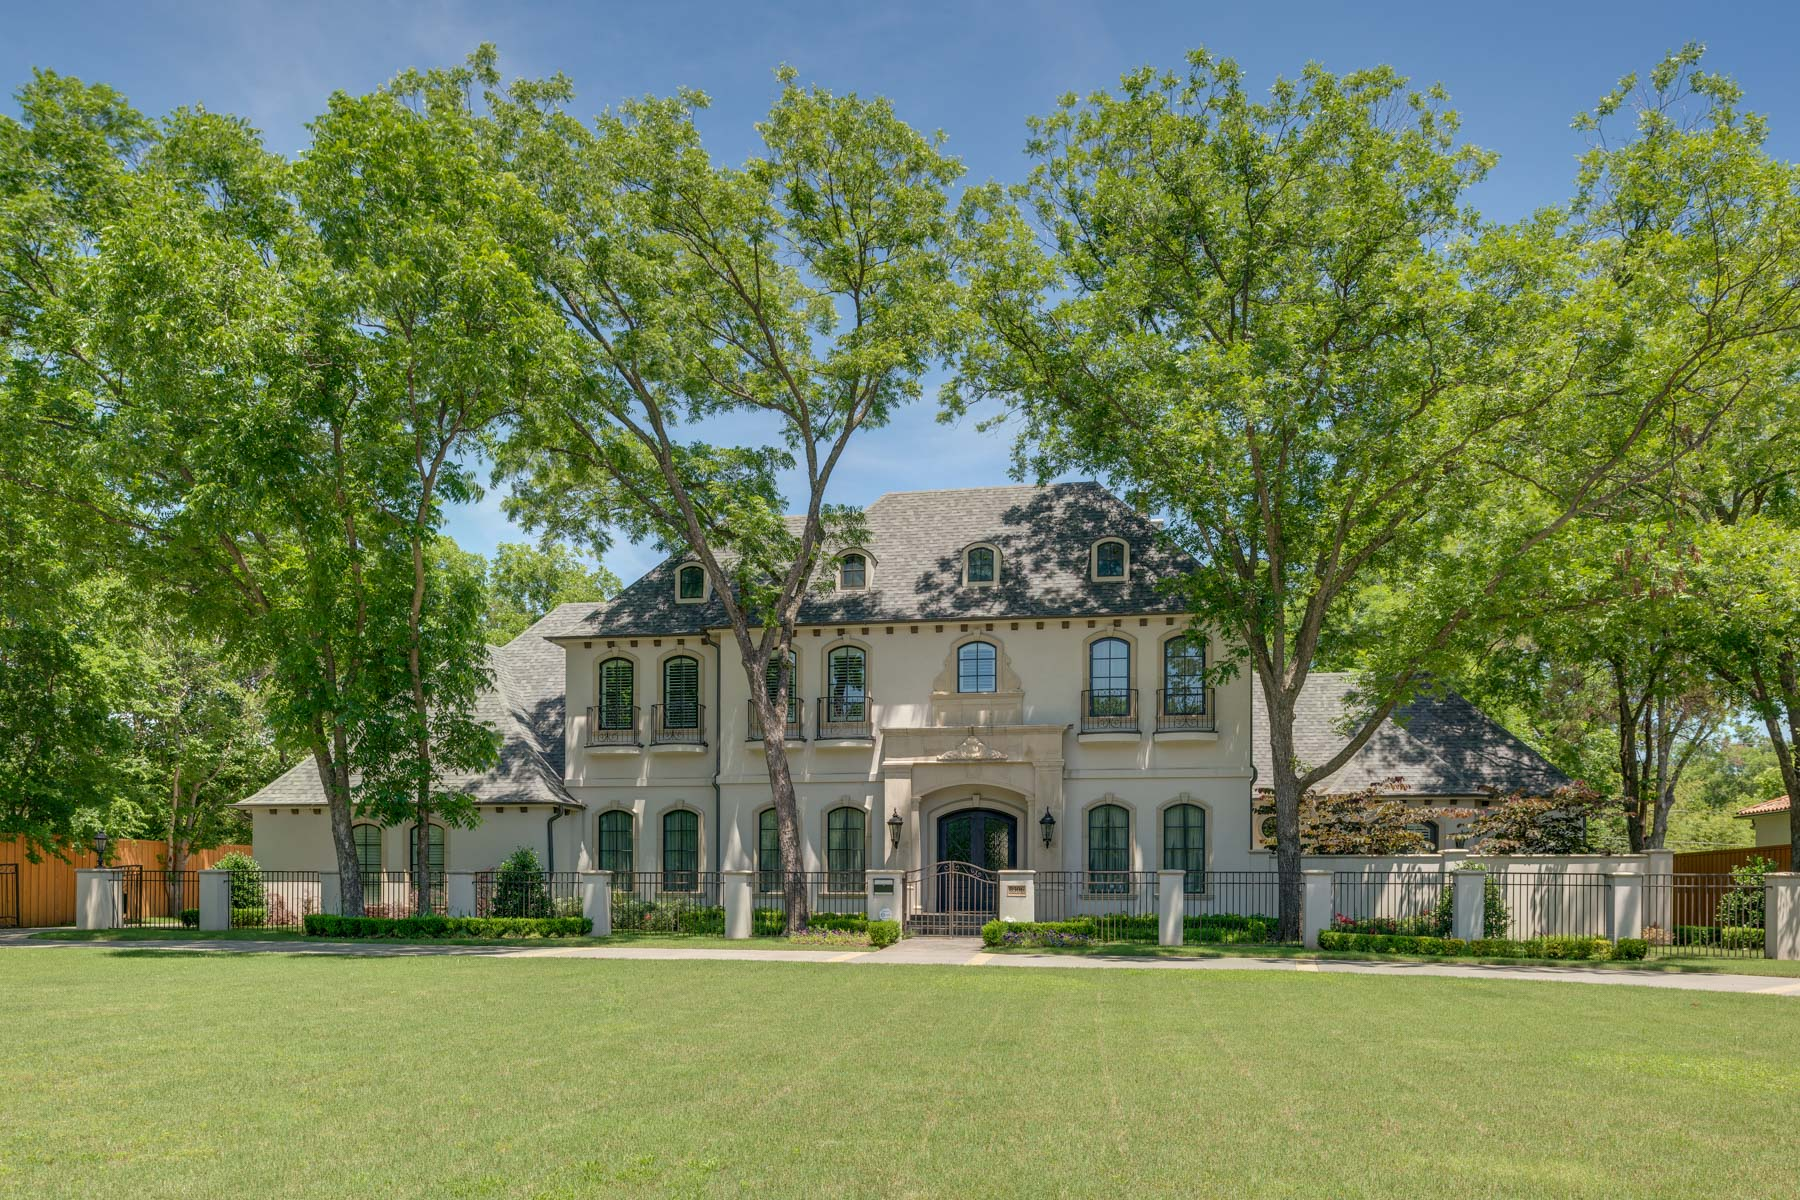 Single Family Home for Sale at French Inspired Inwood Road Estate 8306 Inwood Road, Dallas, Texas, 75209 United States